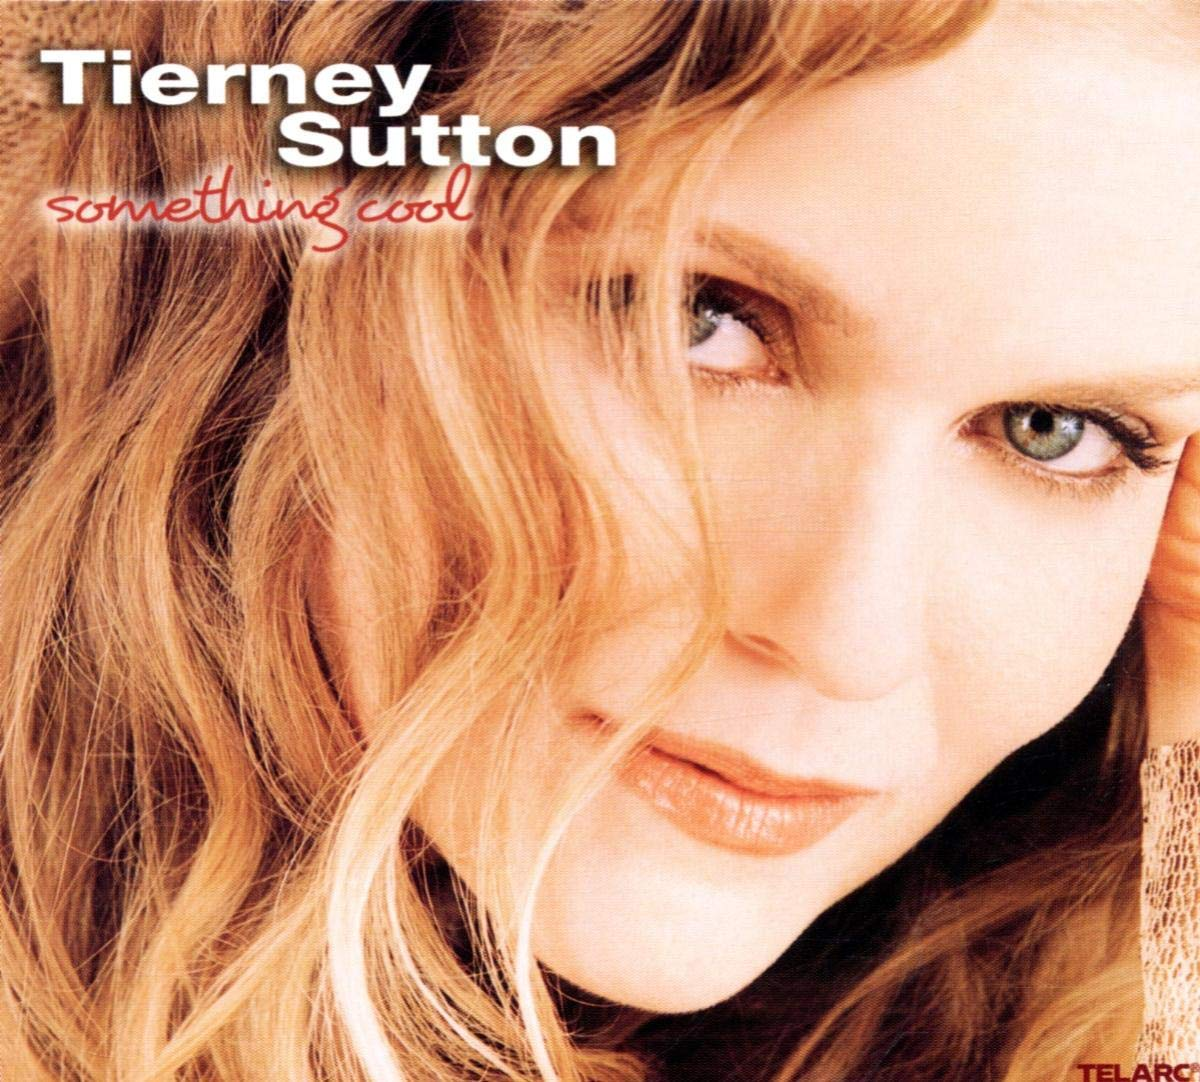 Tierney Sutton - Something Cool - Amazon.com Music